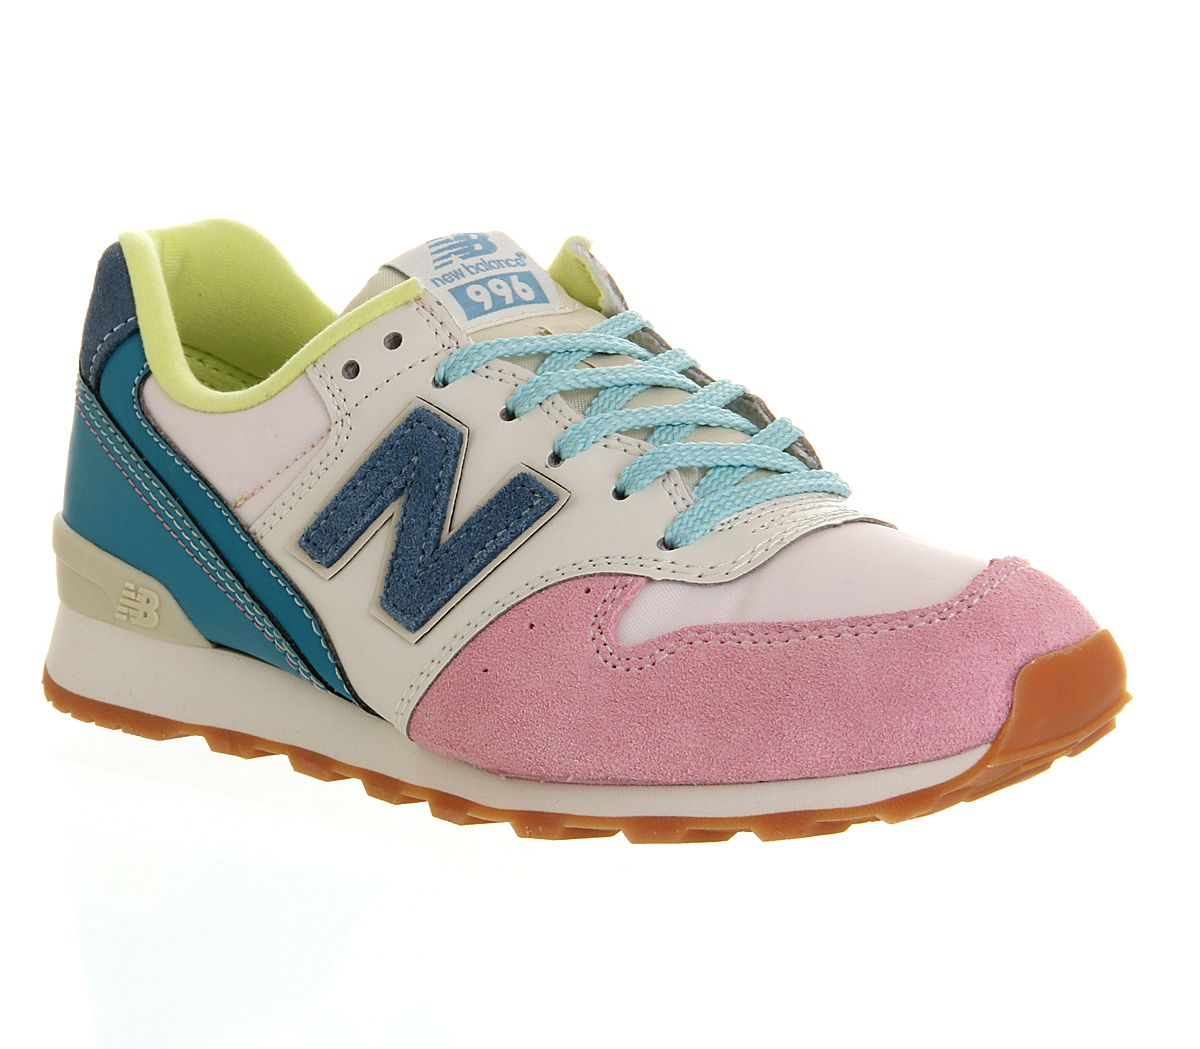 Hers trainers | Pink leather shoes